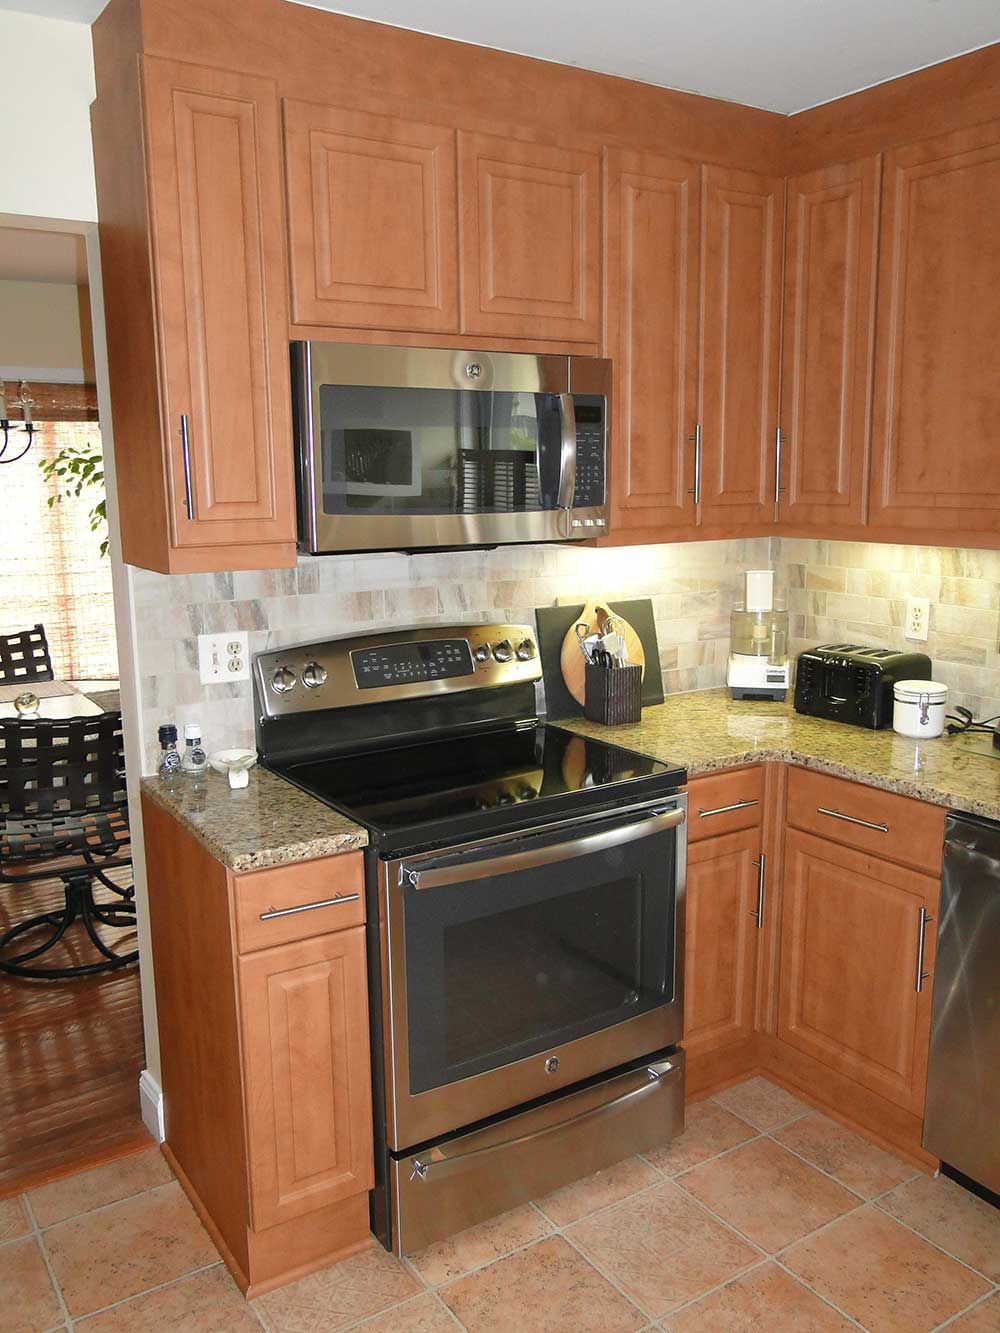 Cabinet Refacing With Countertops and Updated Appliances